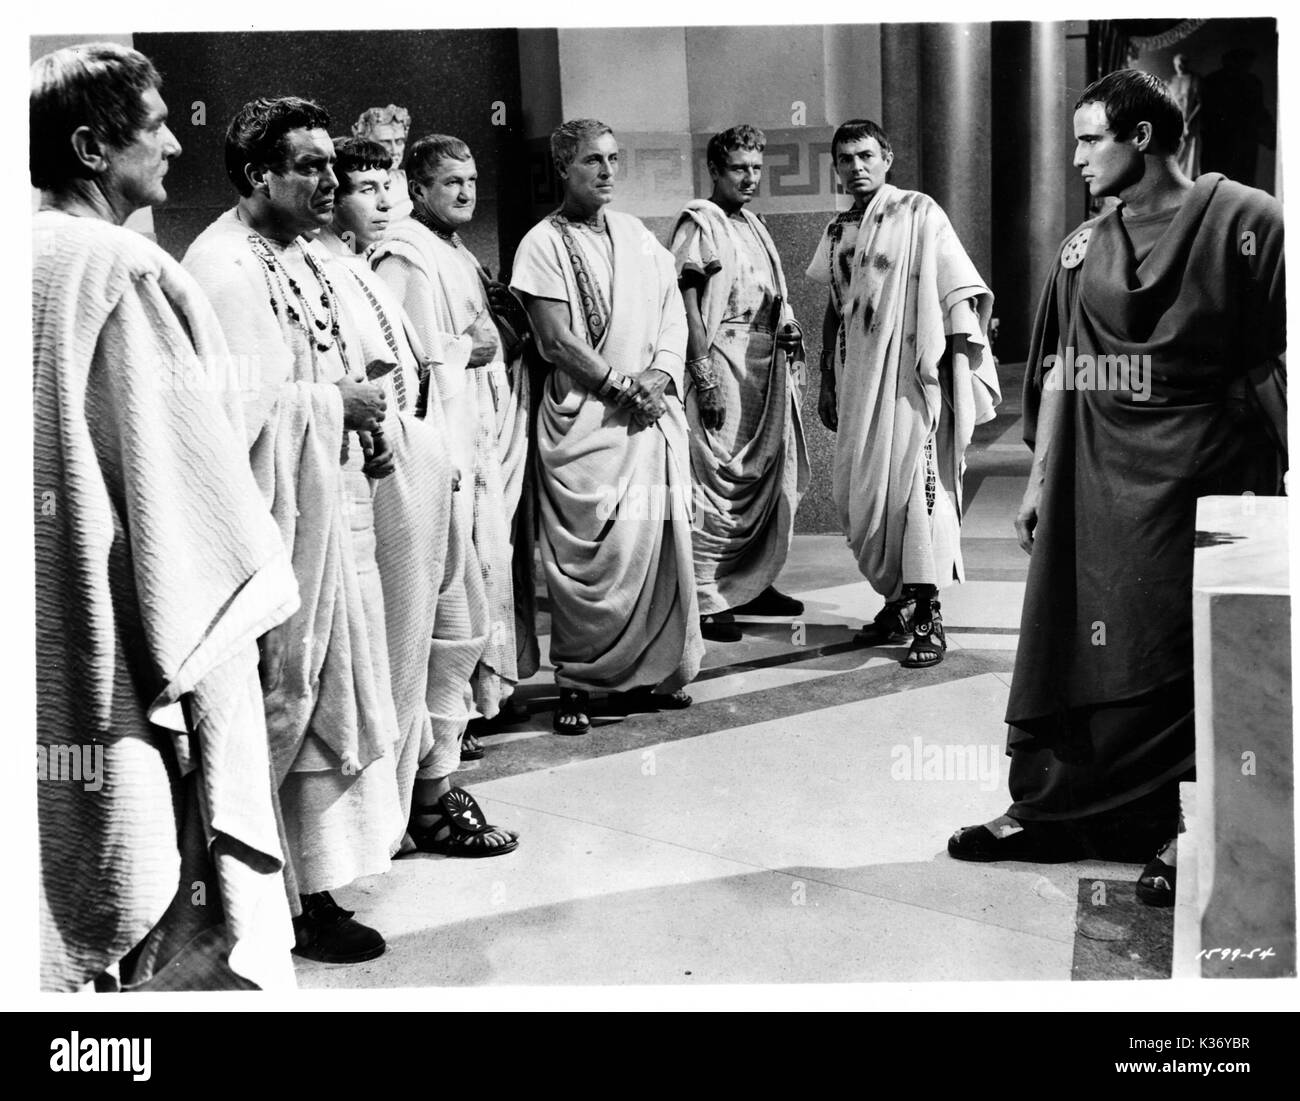 julius caesar brutus cassius who Casca explains to brutus and cassius that shouting they heard was caused by caesar's thrice refusal of a crown offered to him by antony (though confusing, the commoners rejoiced that he had refused it for it indicated he is a noble man.